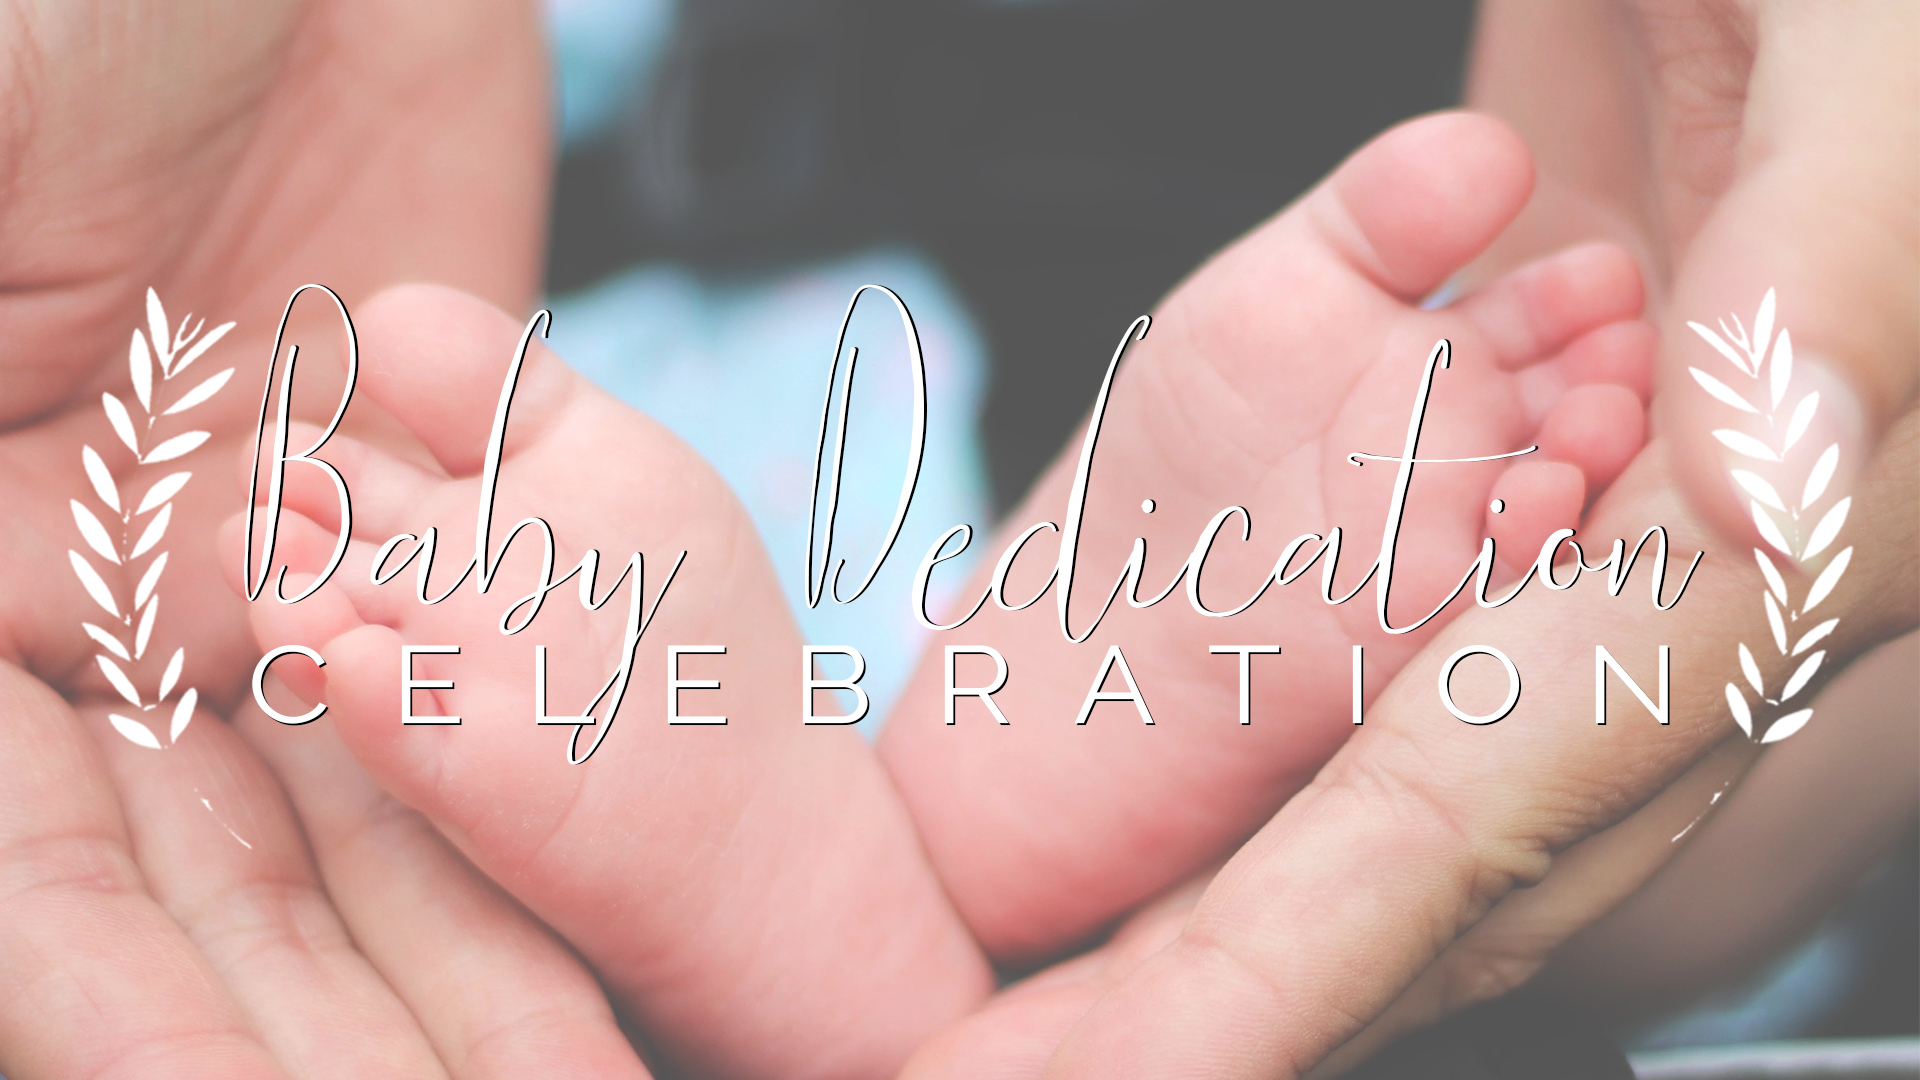 Baby dedication   new 1920x1080